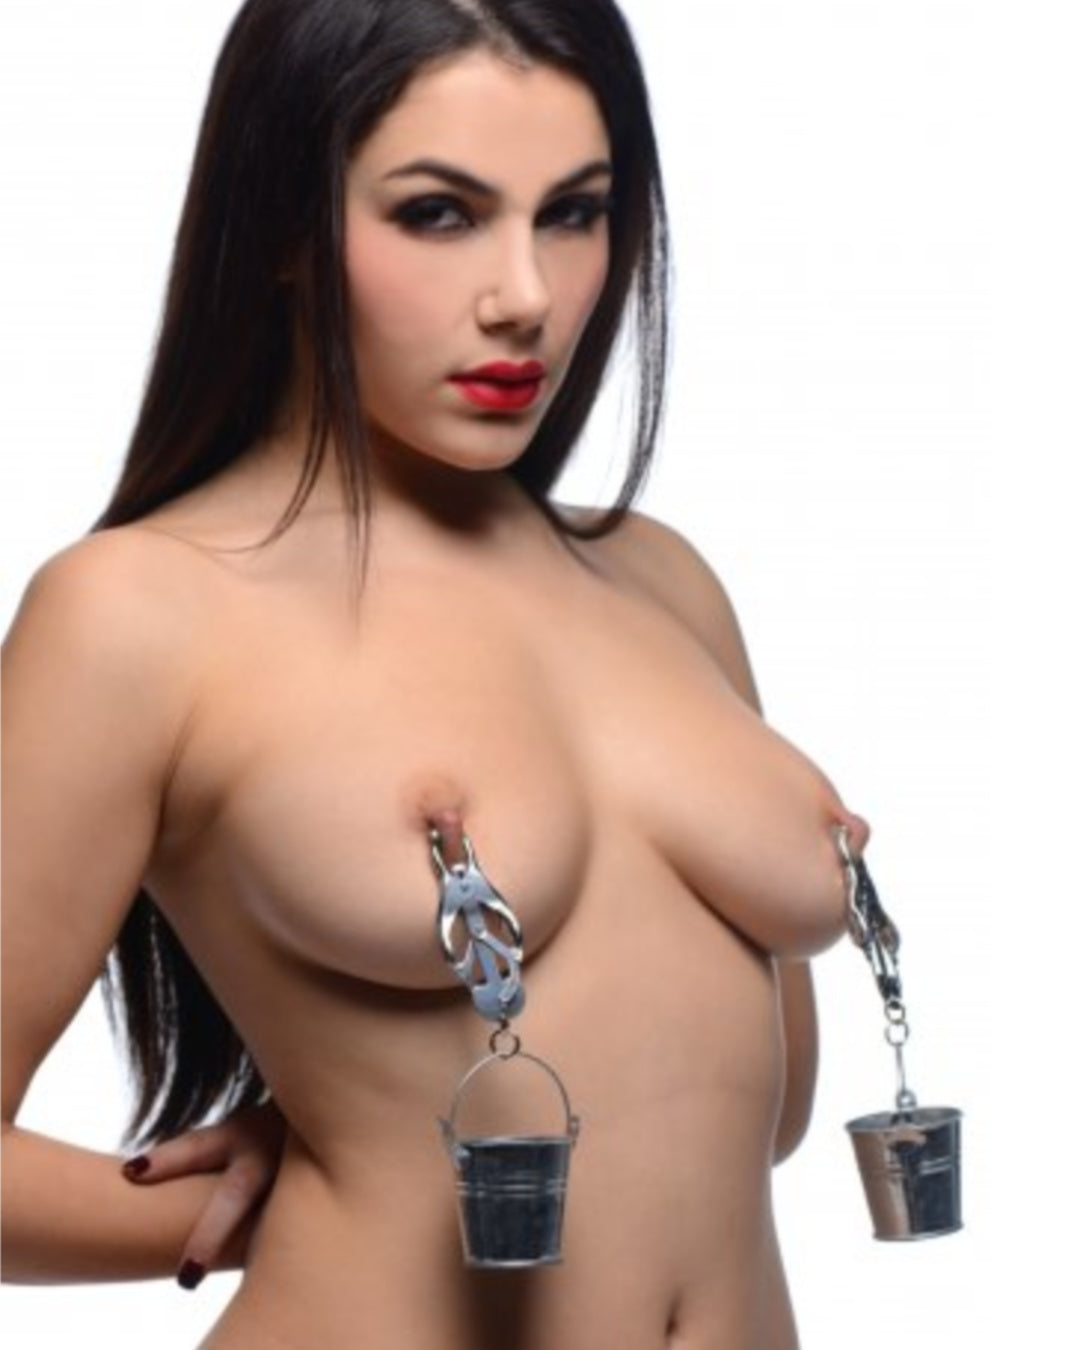 Jugs Nipple Clamps With Stainless Steel Buckets  ON A DARK HAIRED FEMALE MODEL